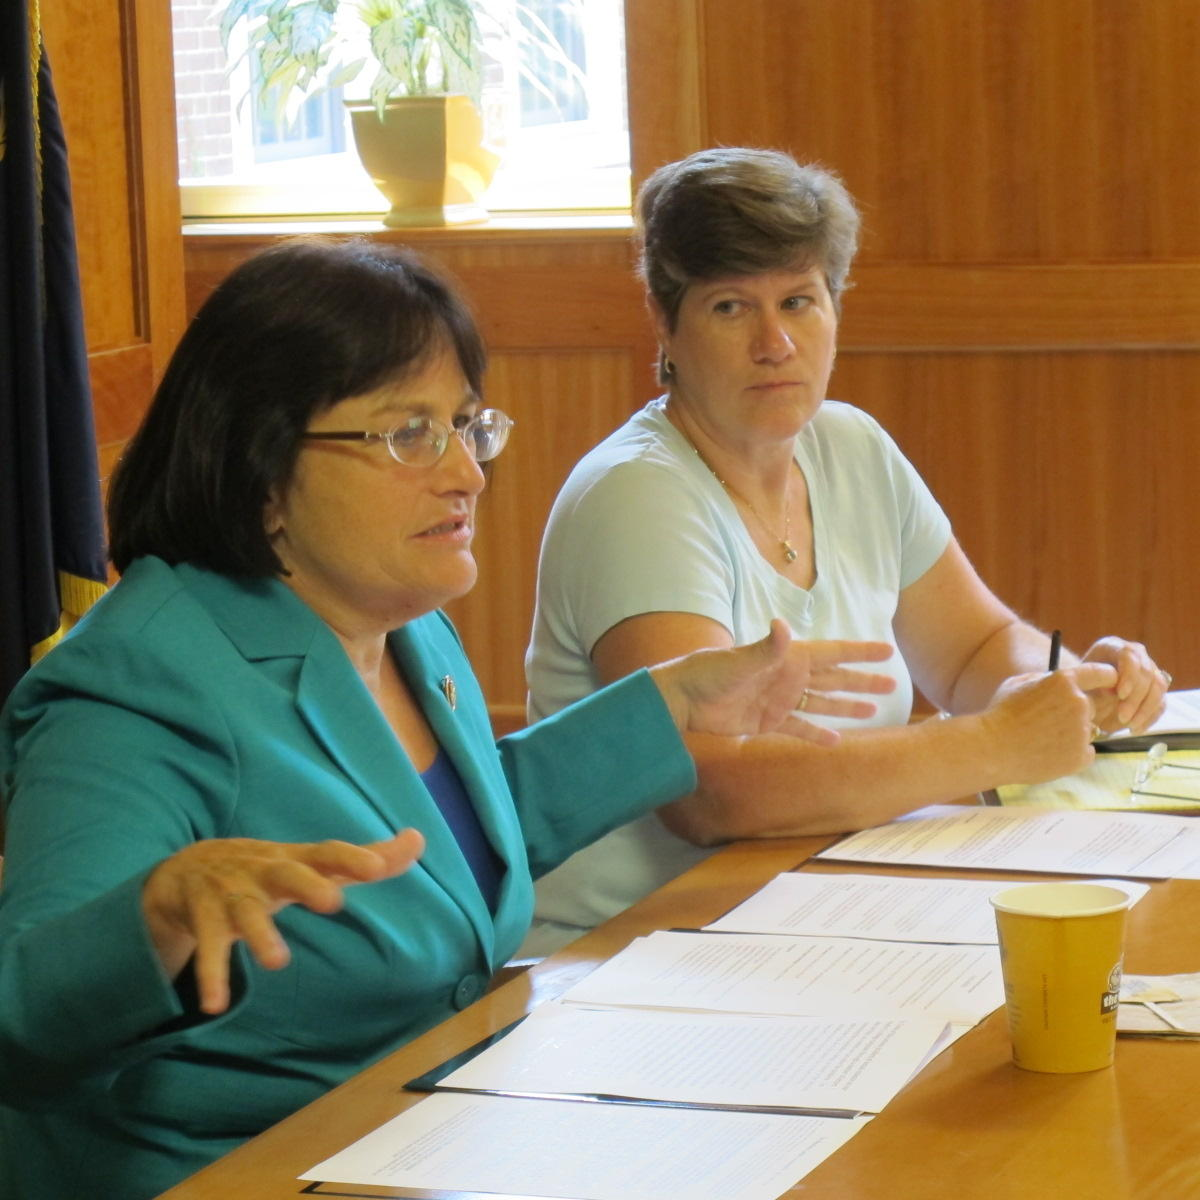 U.S. Rep. Kuster Holds Roundtable On Campus Sexual Assault ...